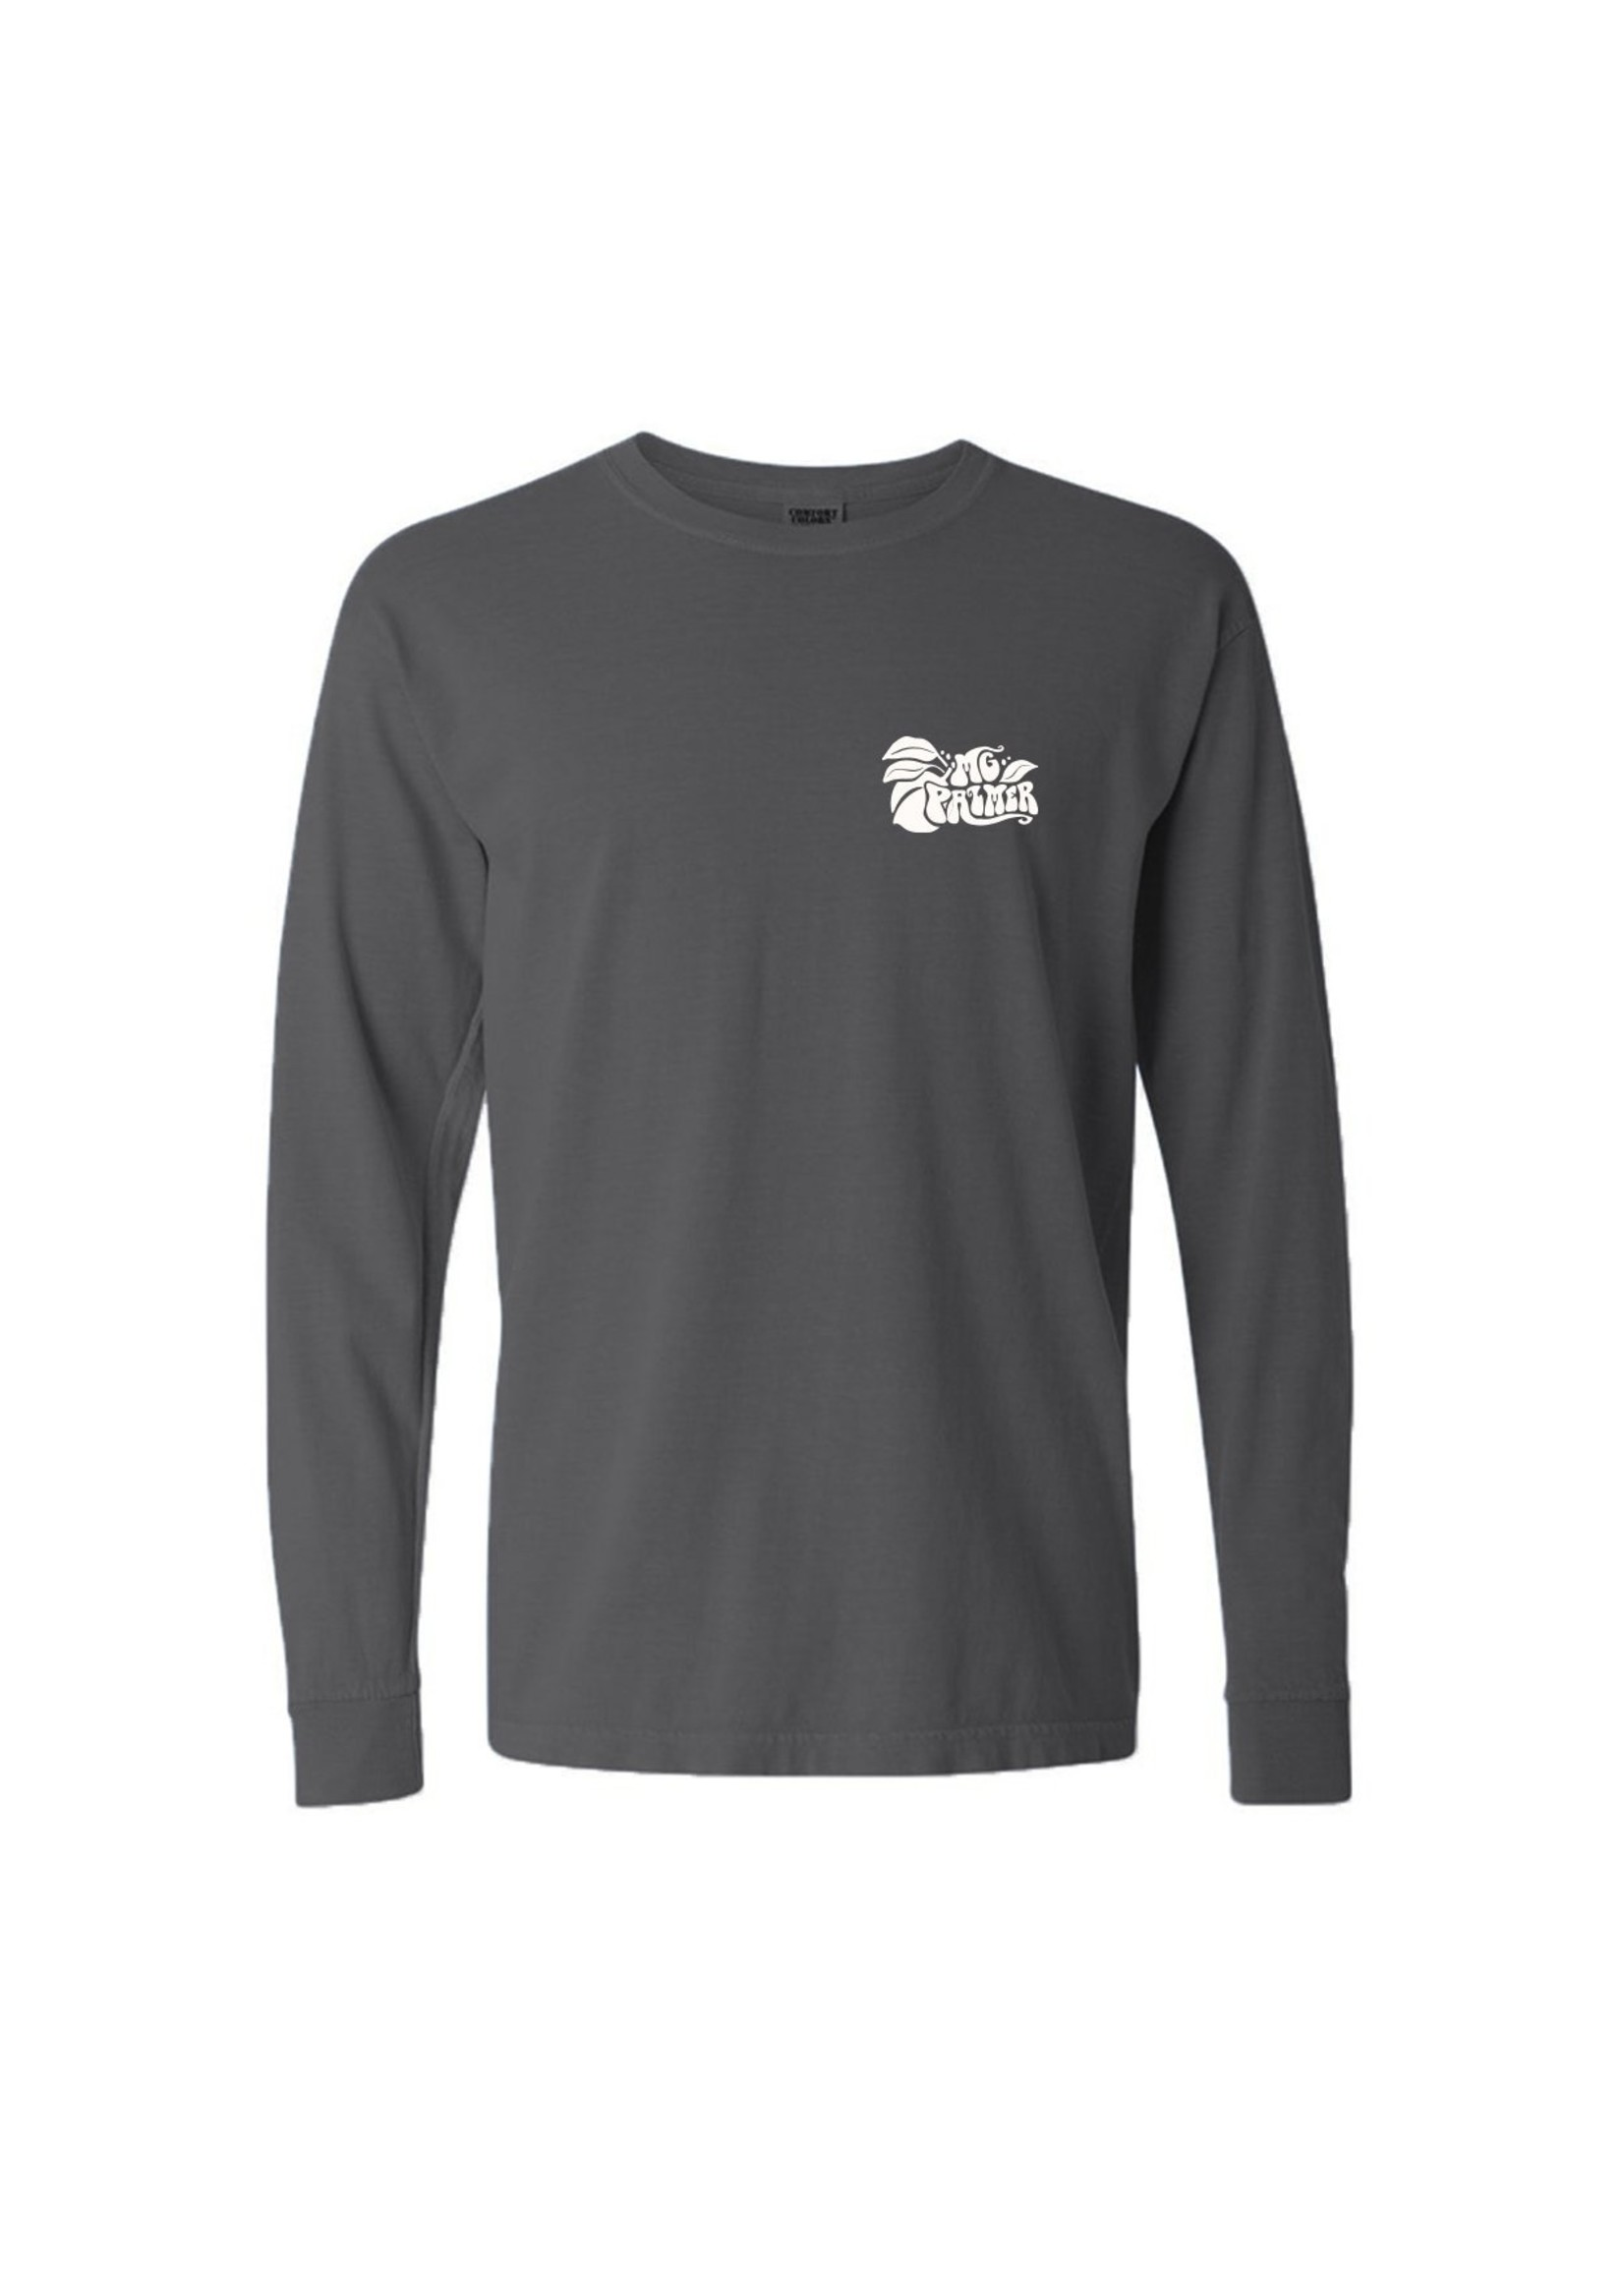 Dig Those Southern Peaches - Long Sleeve